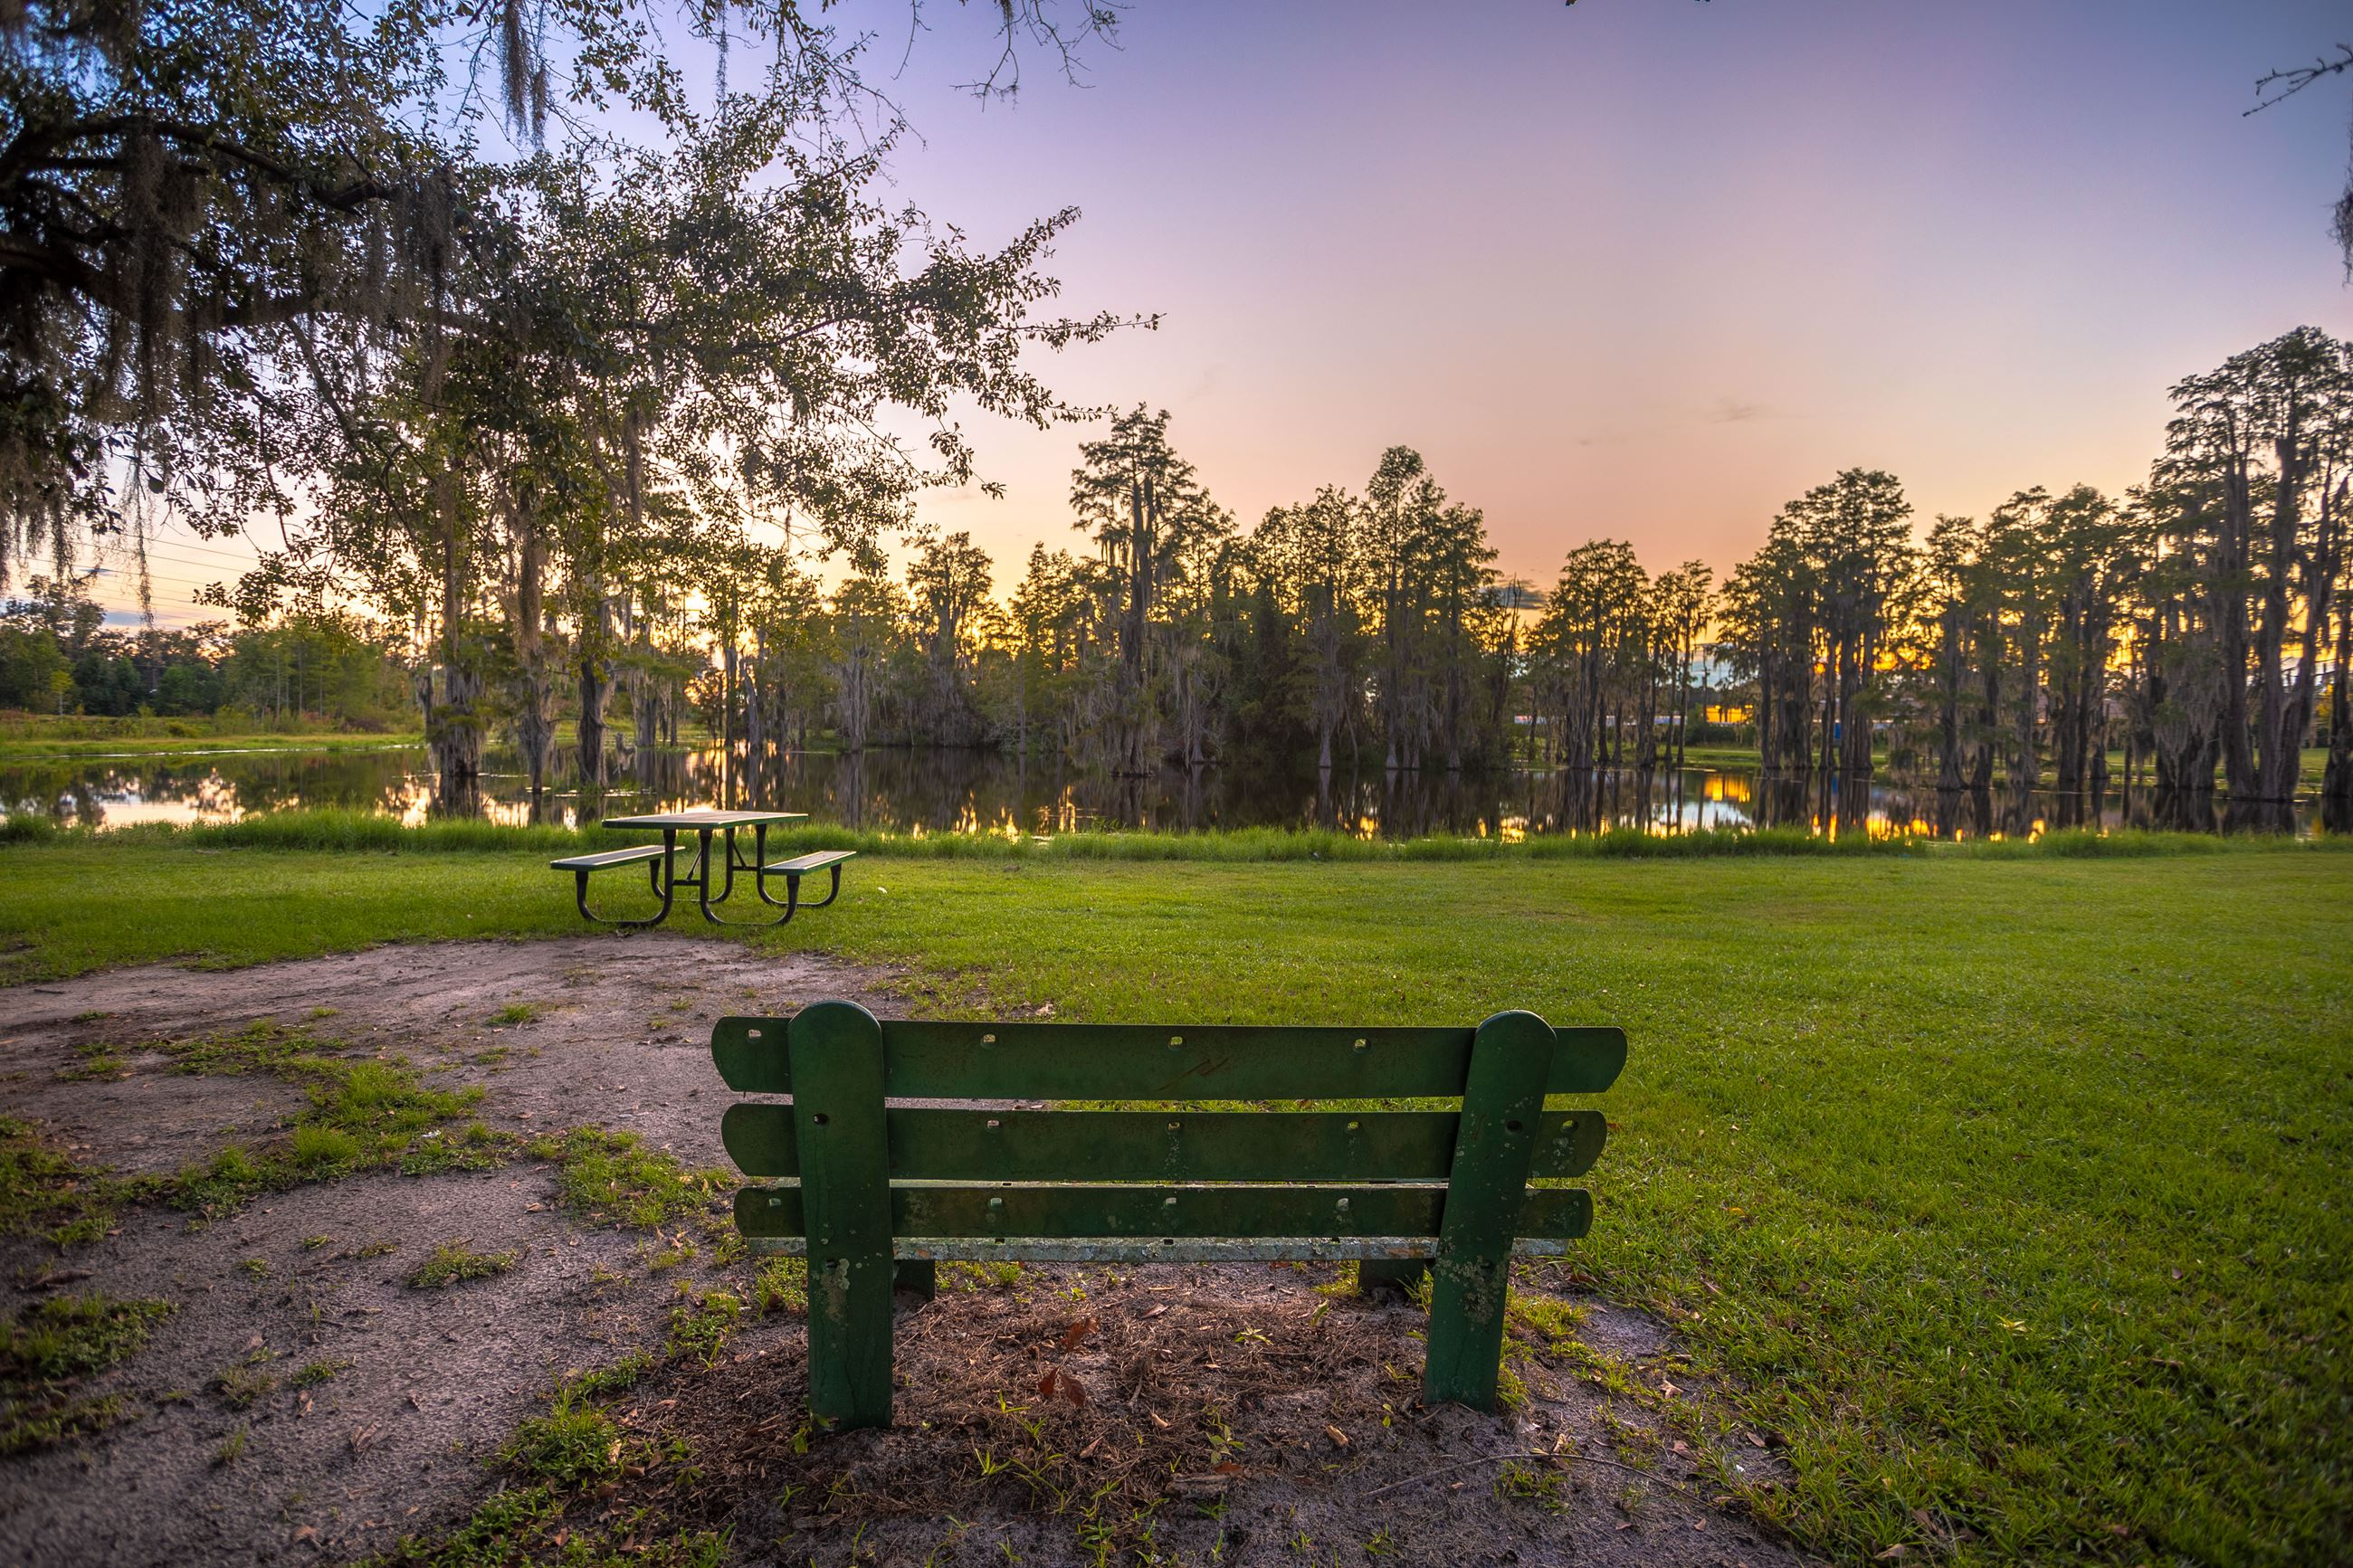 An image of a bench and picnic table in front of a cypress pond at sunset.